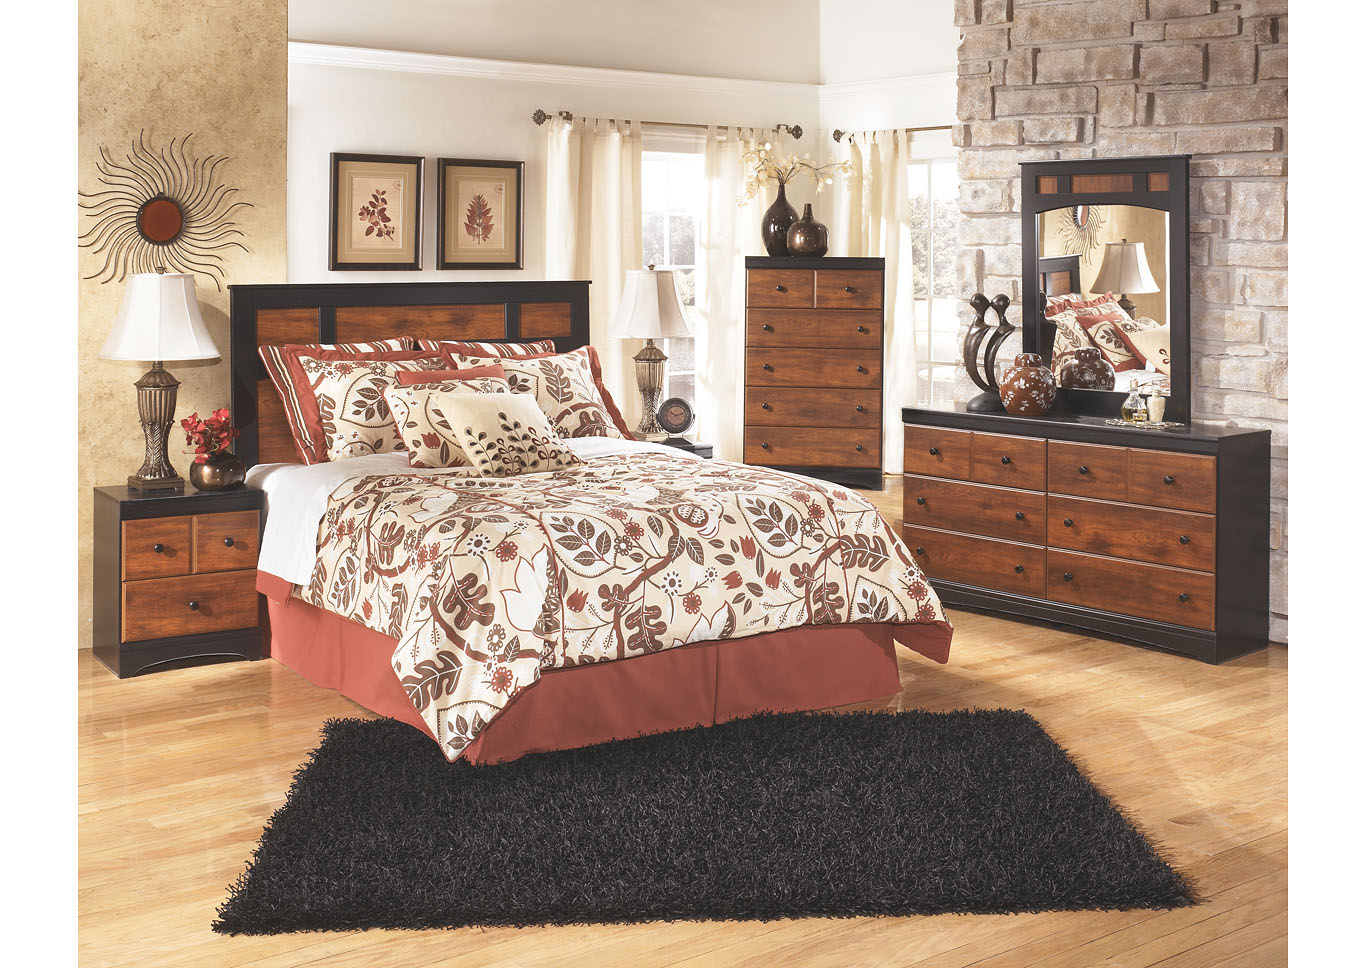 Aimwell Queen/Full Panel Headboard w/Dresser, Mirror & Nightstand,Signature Design By Ashley